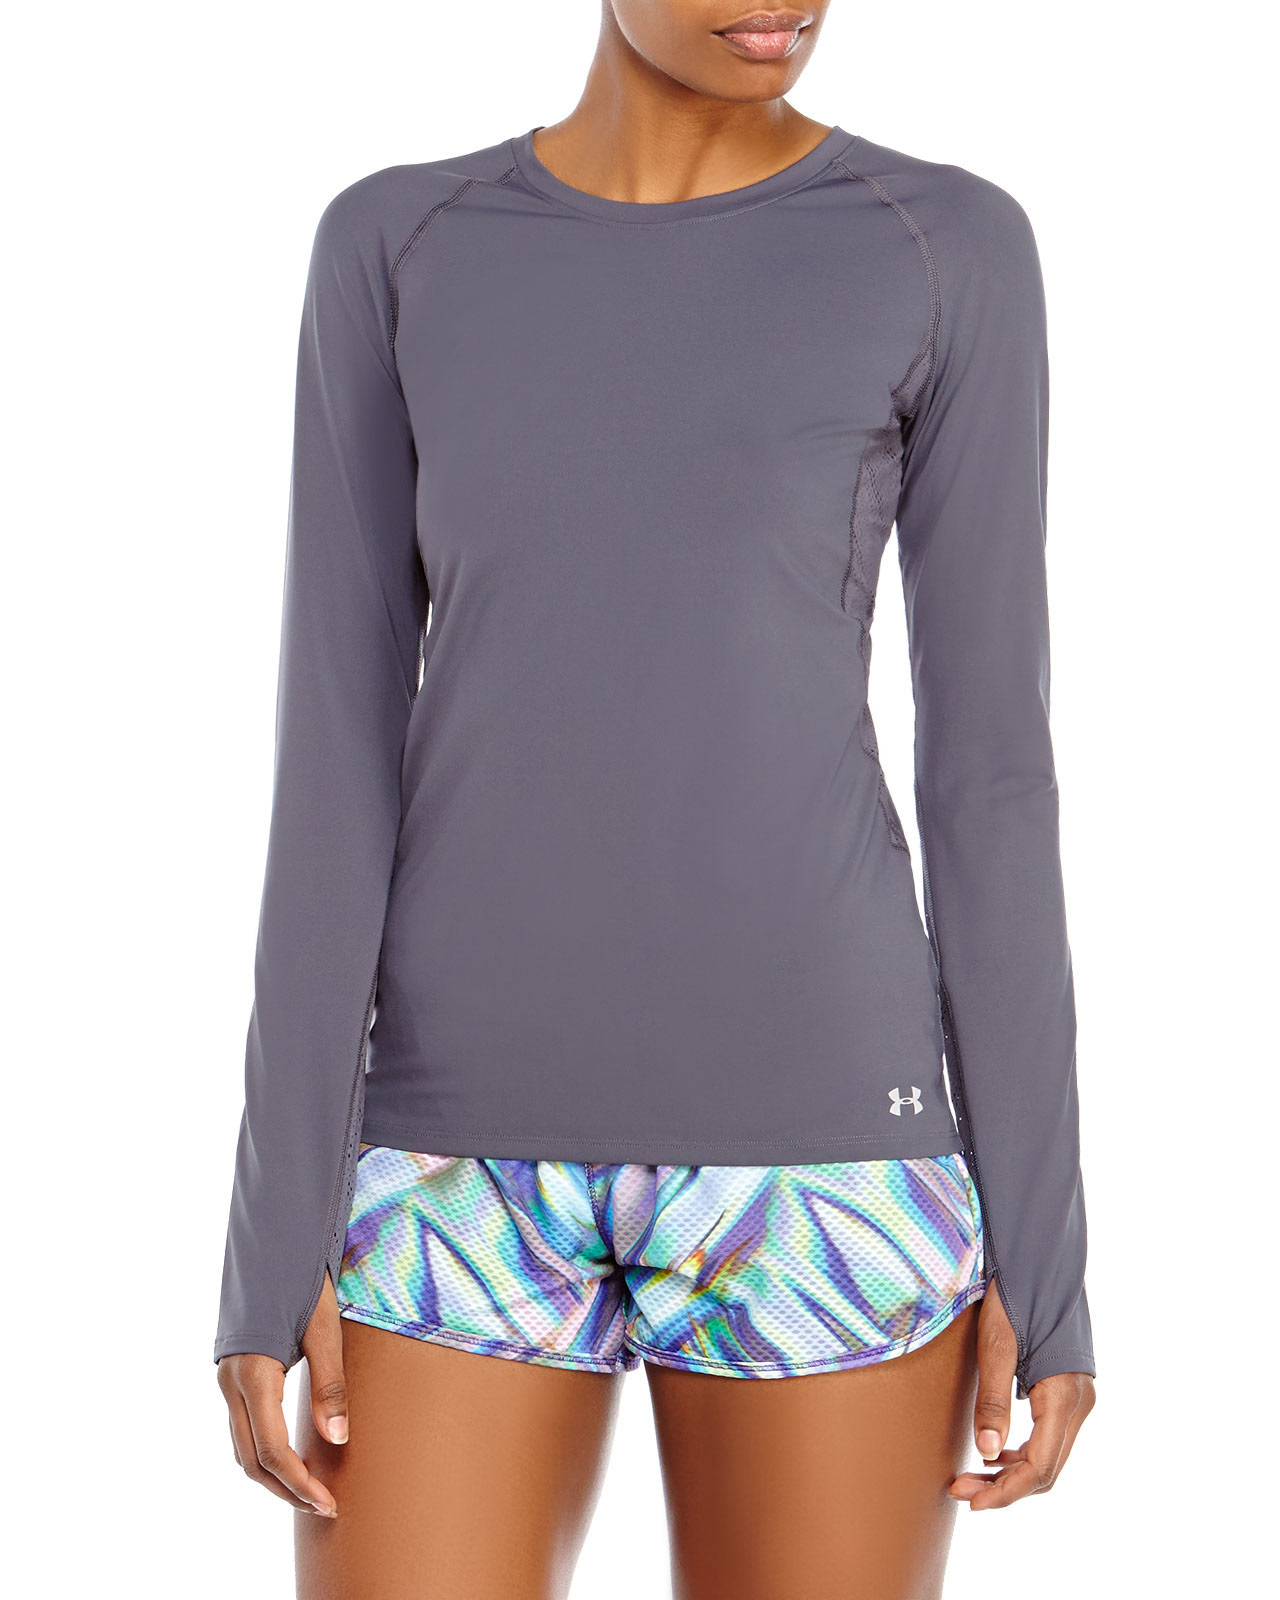 Under armour vented long sleeve shirt in gray charcoal for Gray under armour shirt